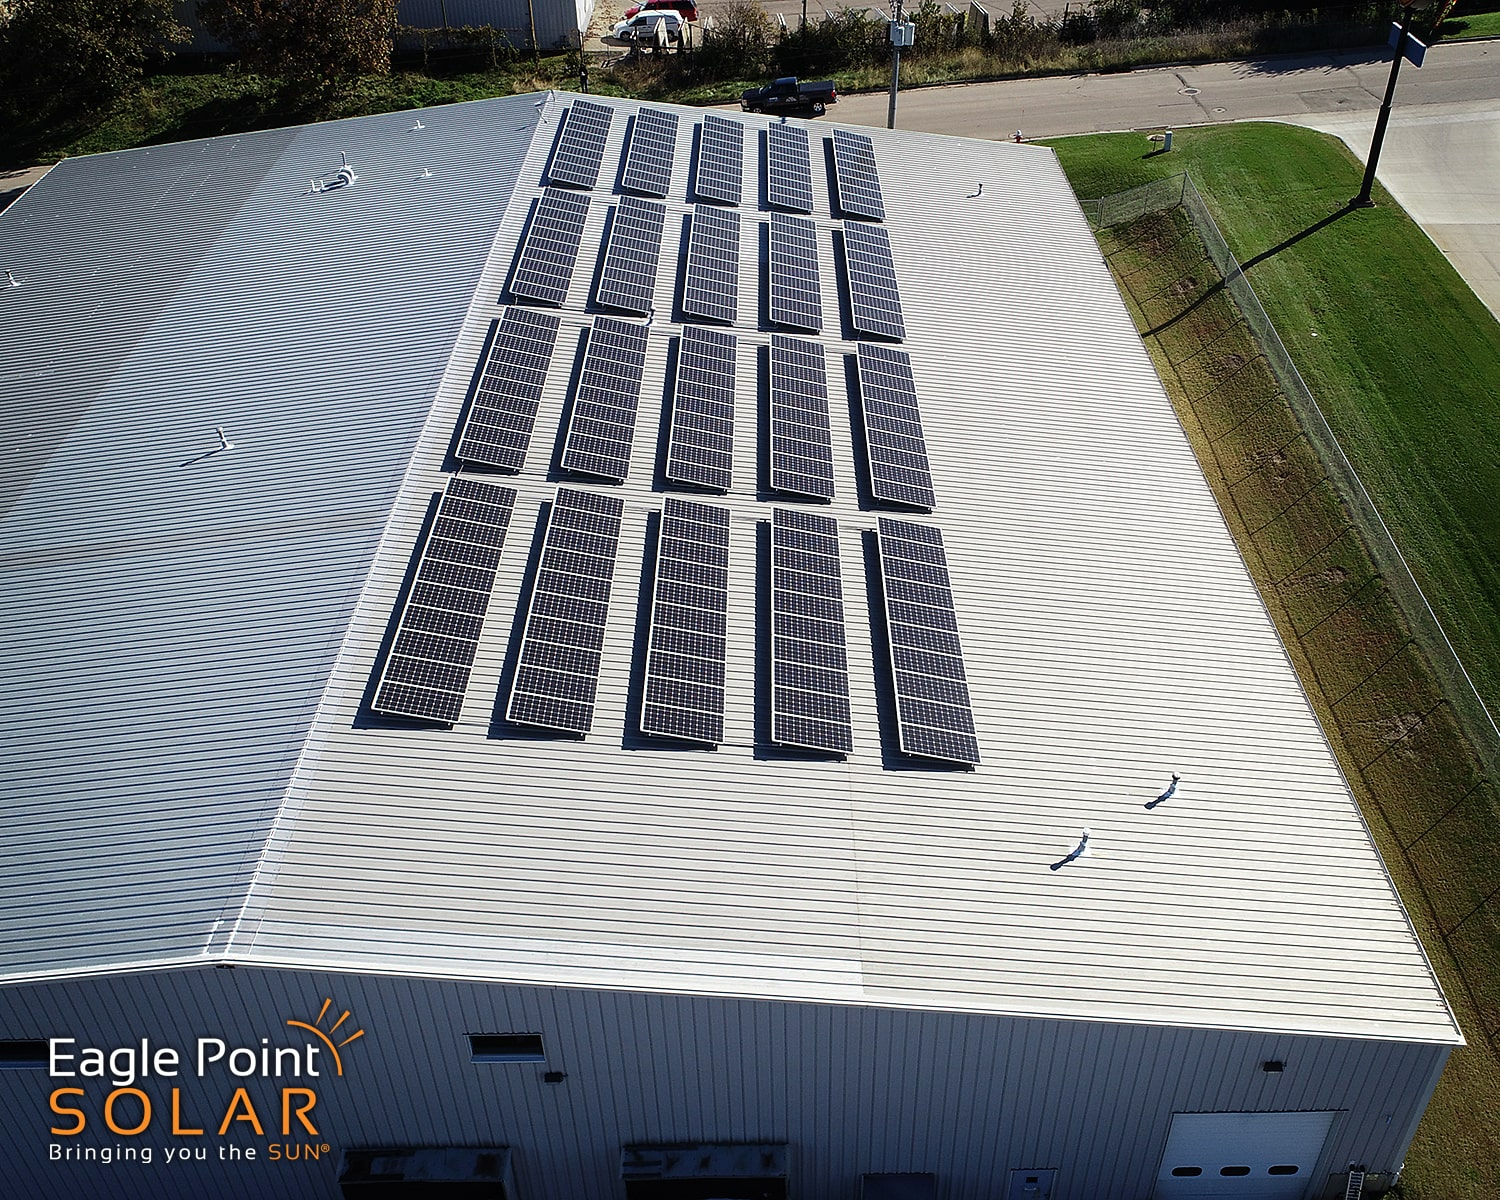 Photo of commercial roof mounted solar array on Harris Golf Cars